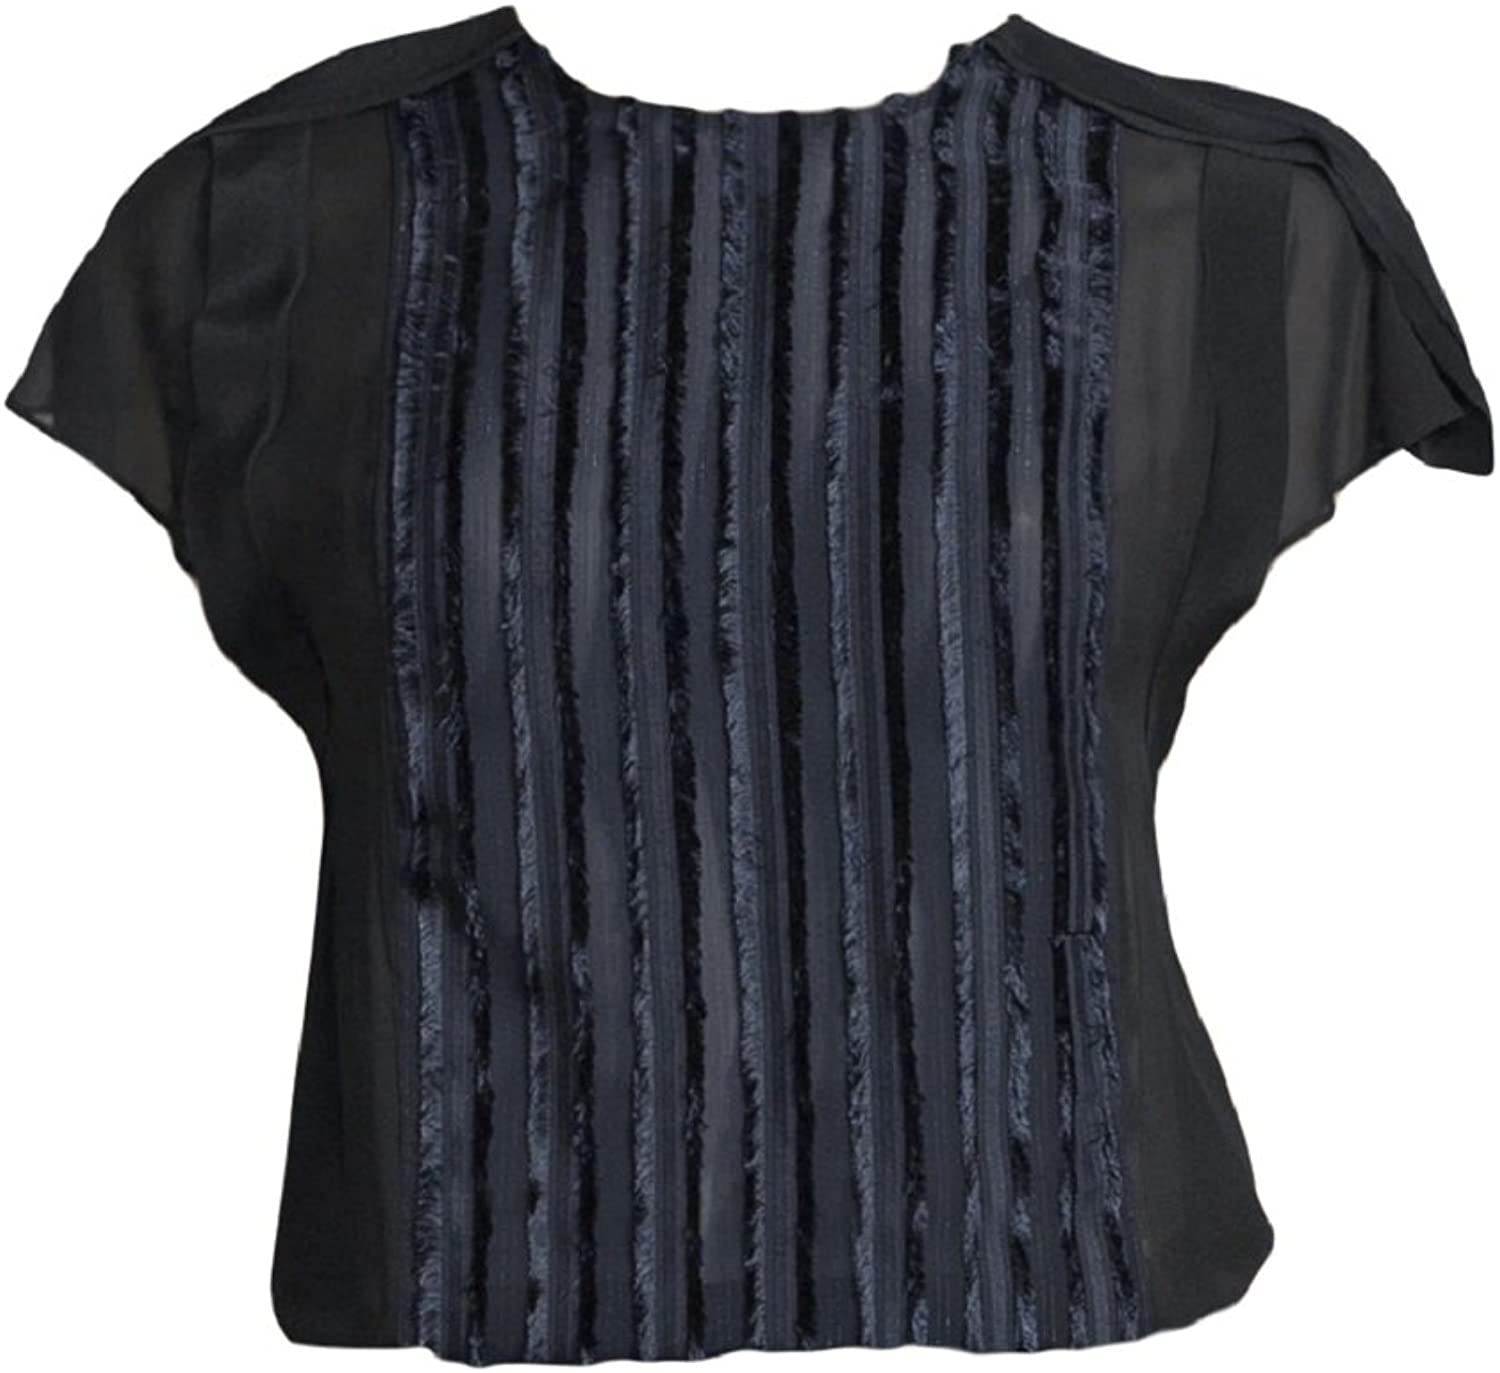 3.1 Phillip Lim Navy Sleeveless Coupe Top 2